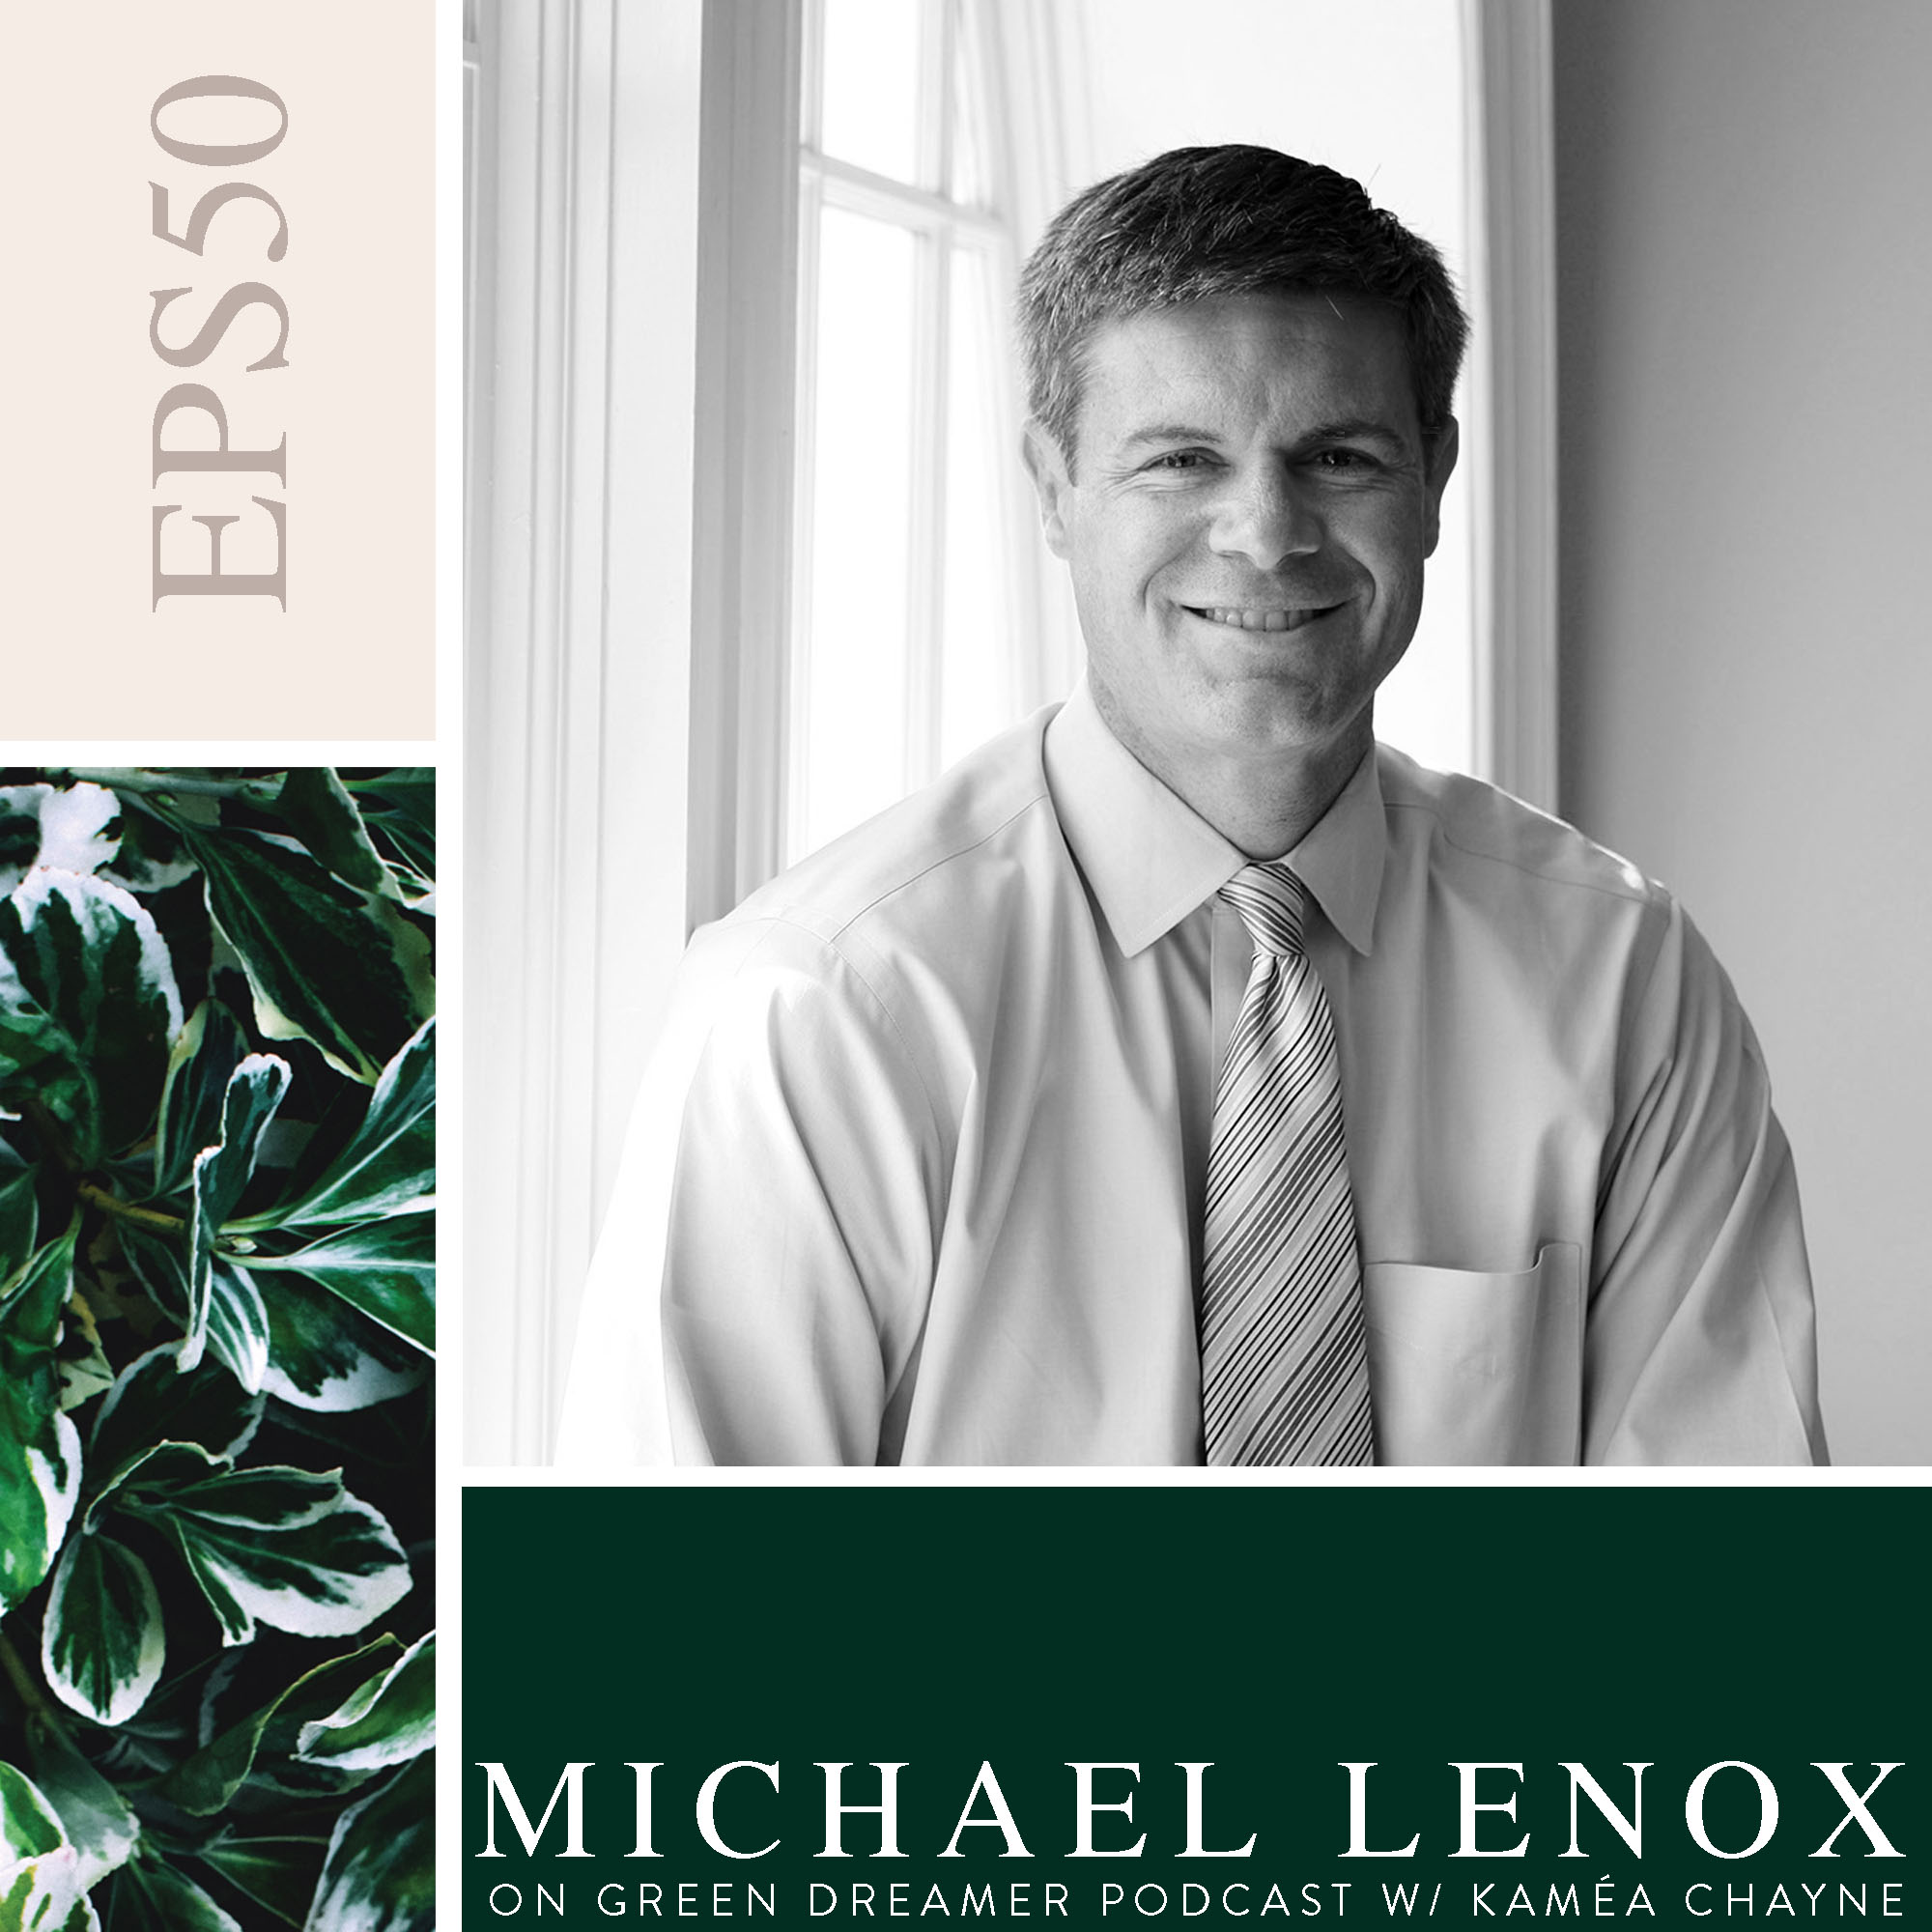 50) BW Michael-Lenox-of-Can-Business-Save-the-Earth-on-Green-Dreamer-Podcast-with-Kaméa-Chayne.jpg